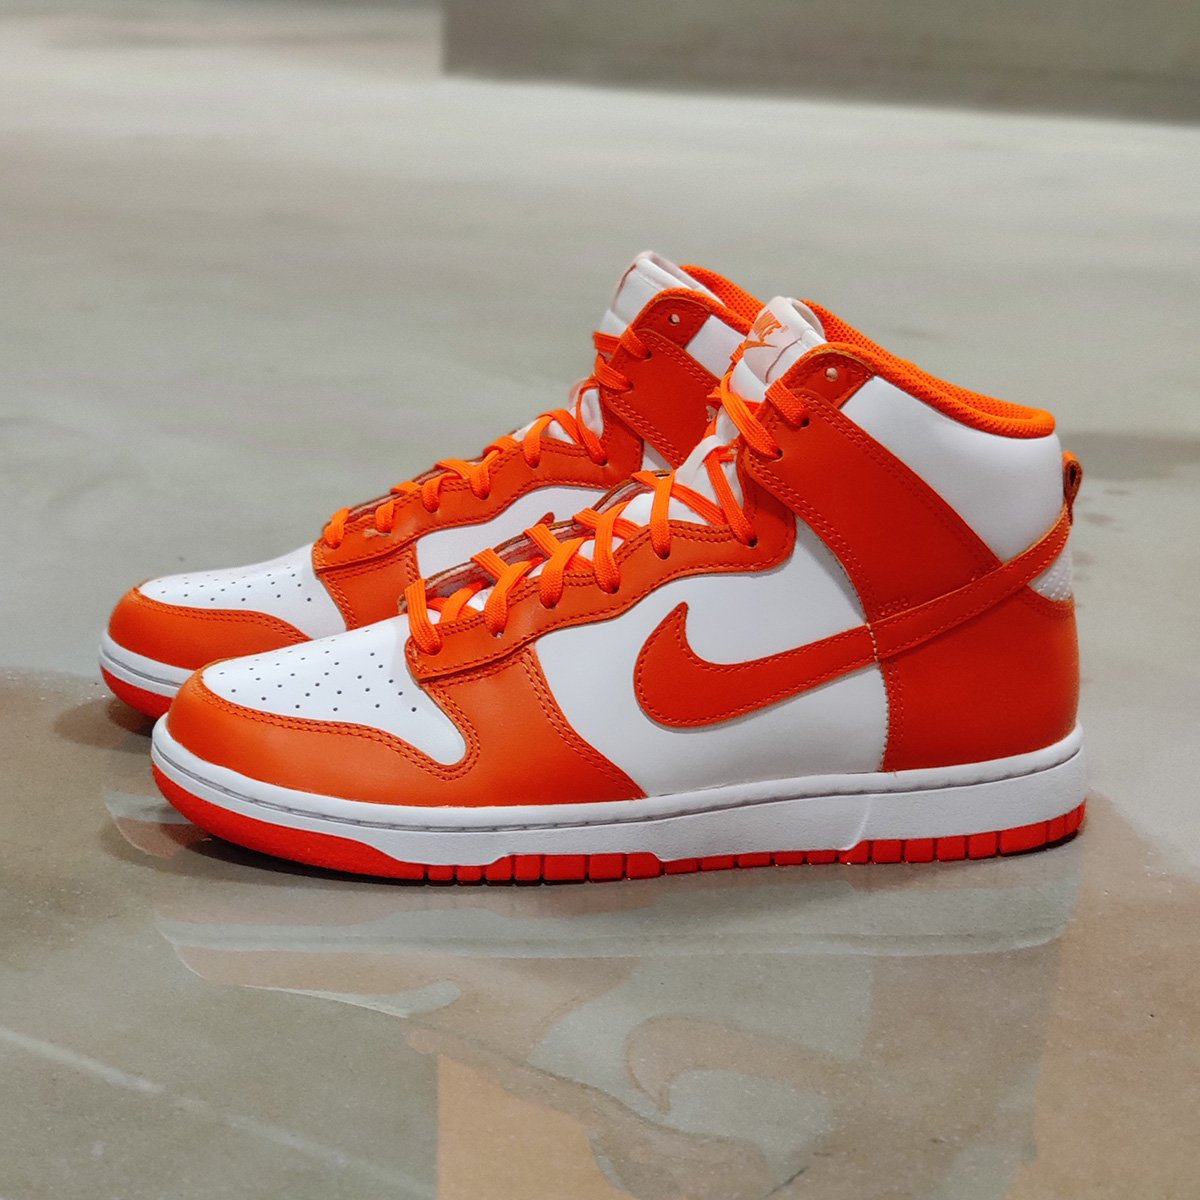 Unboxing: Nike Dunk Hi Retro Orange Blaze